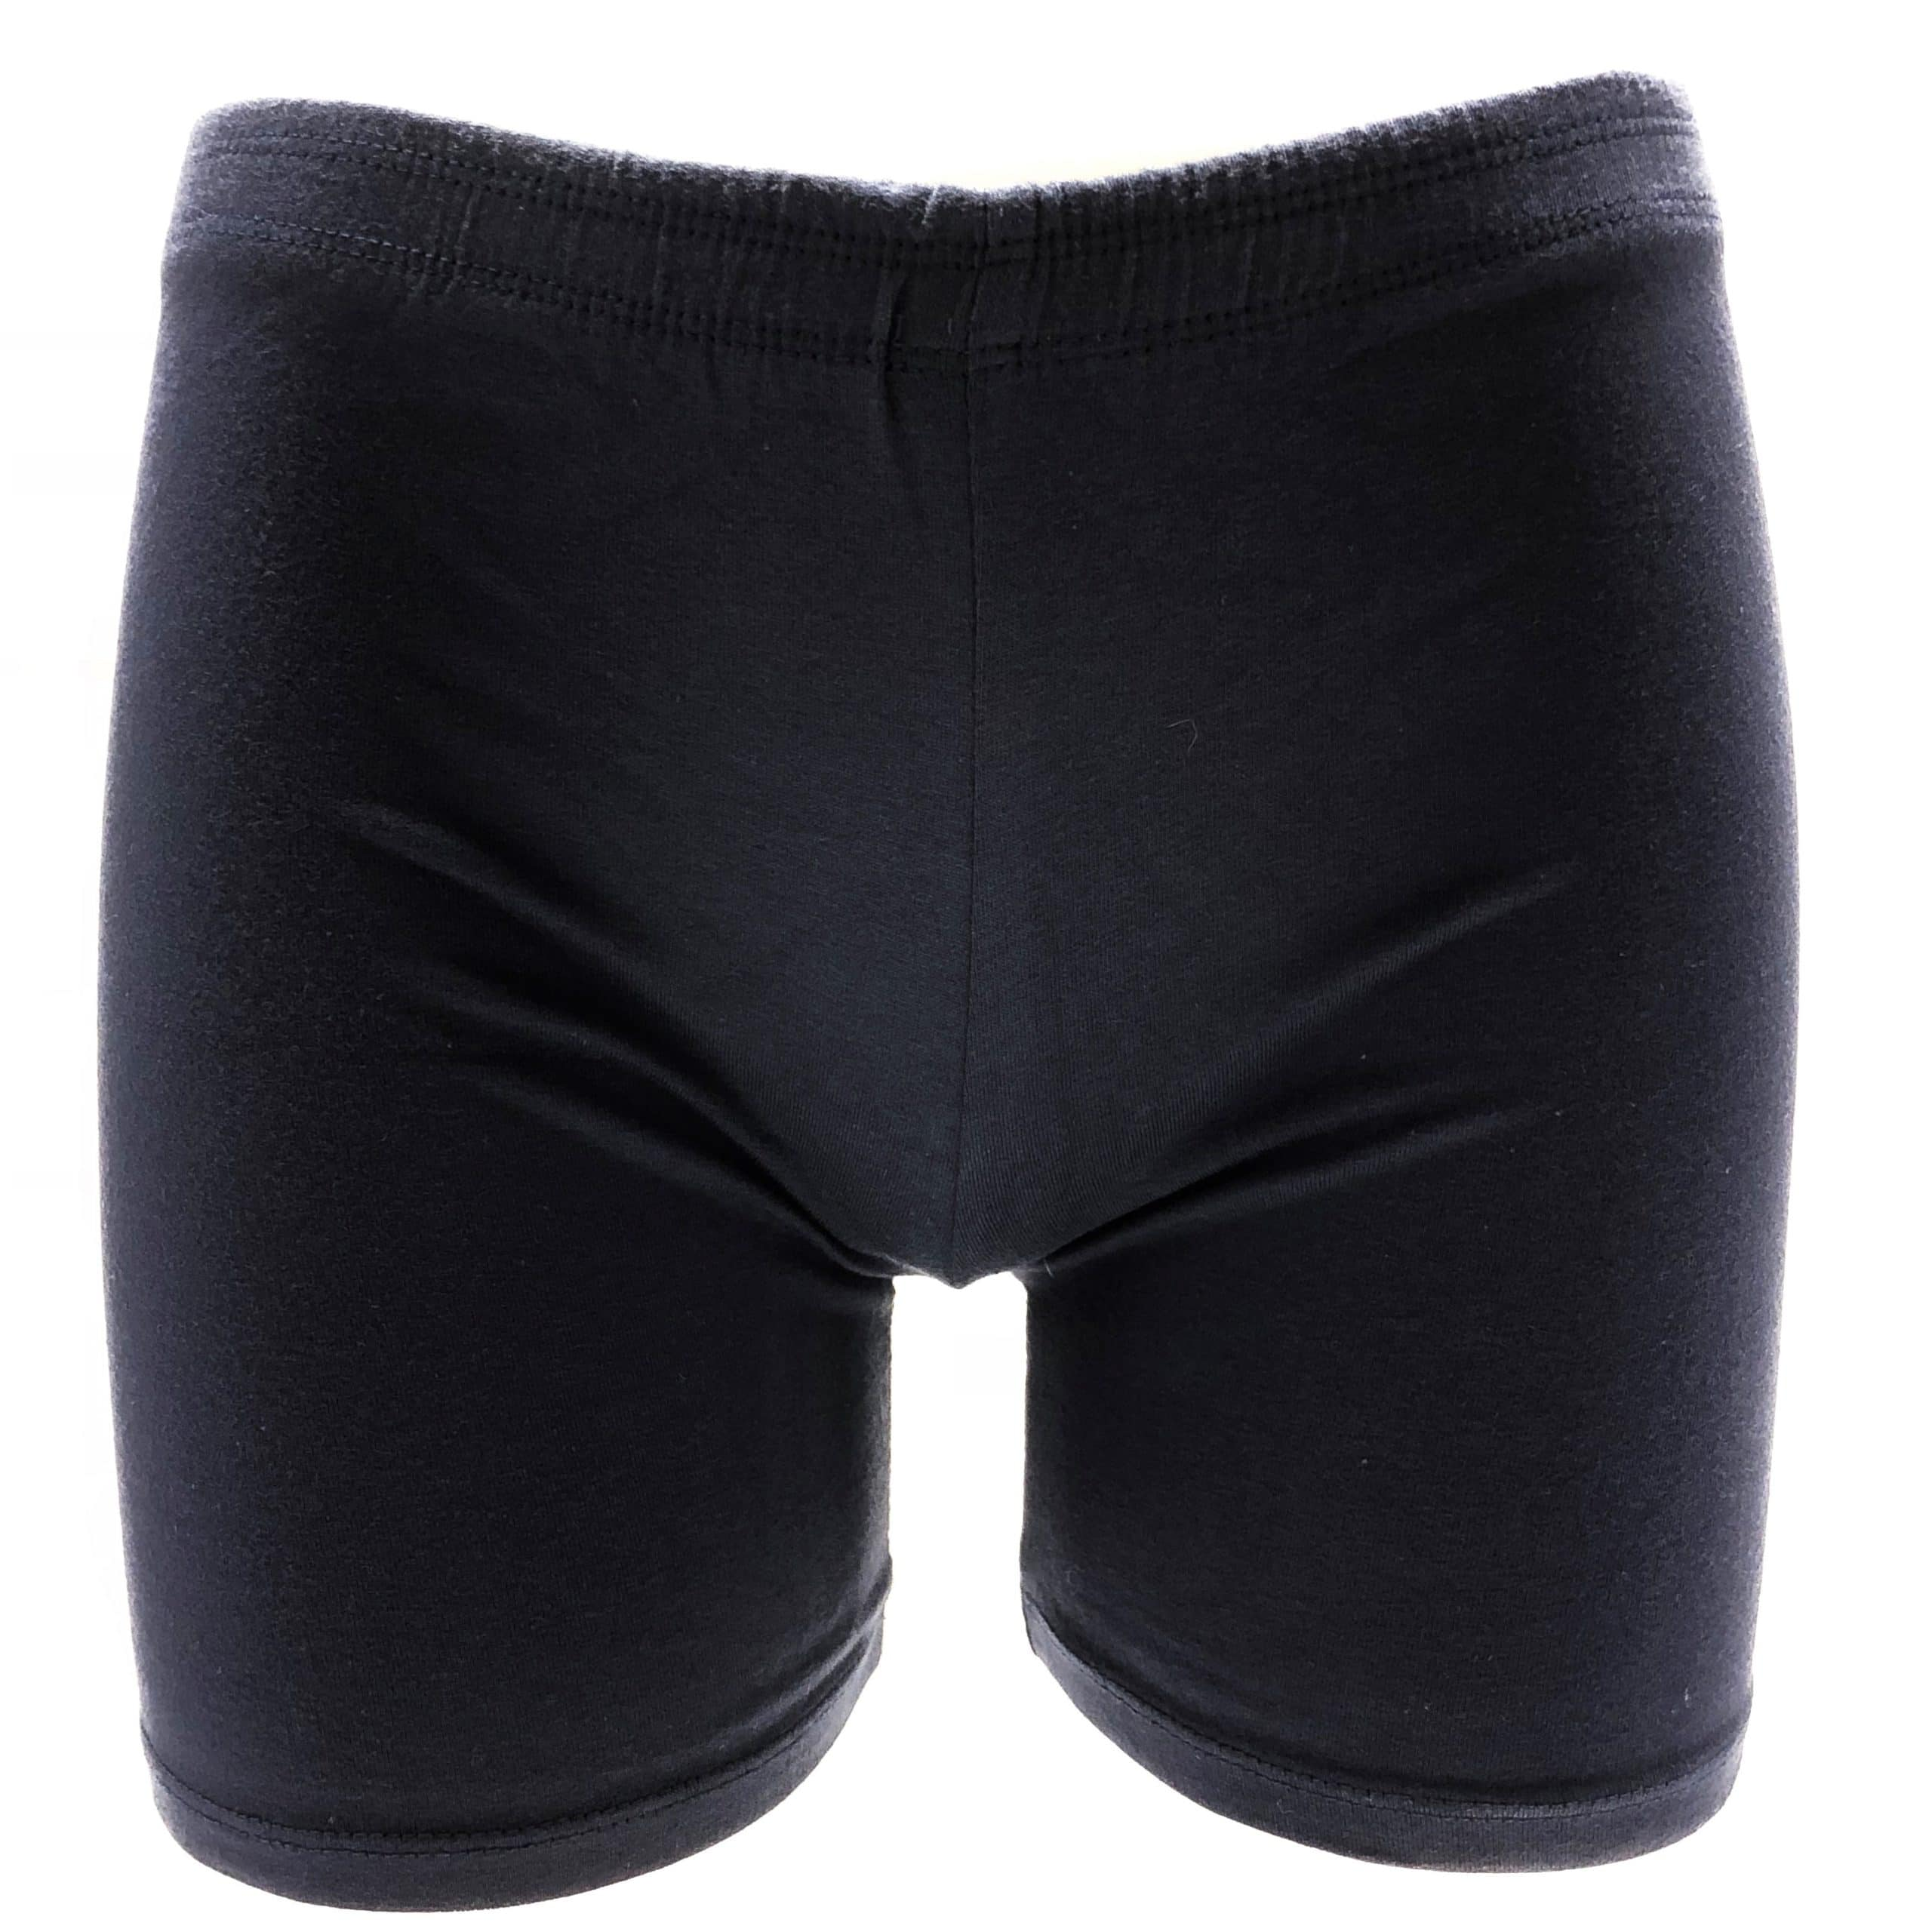 Black Under School Uniform Short